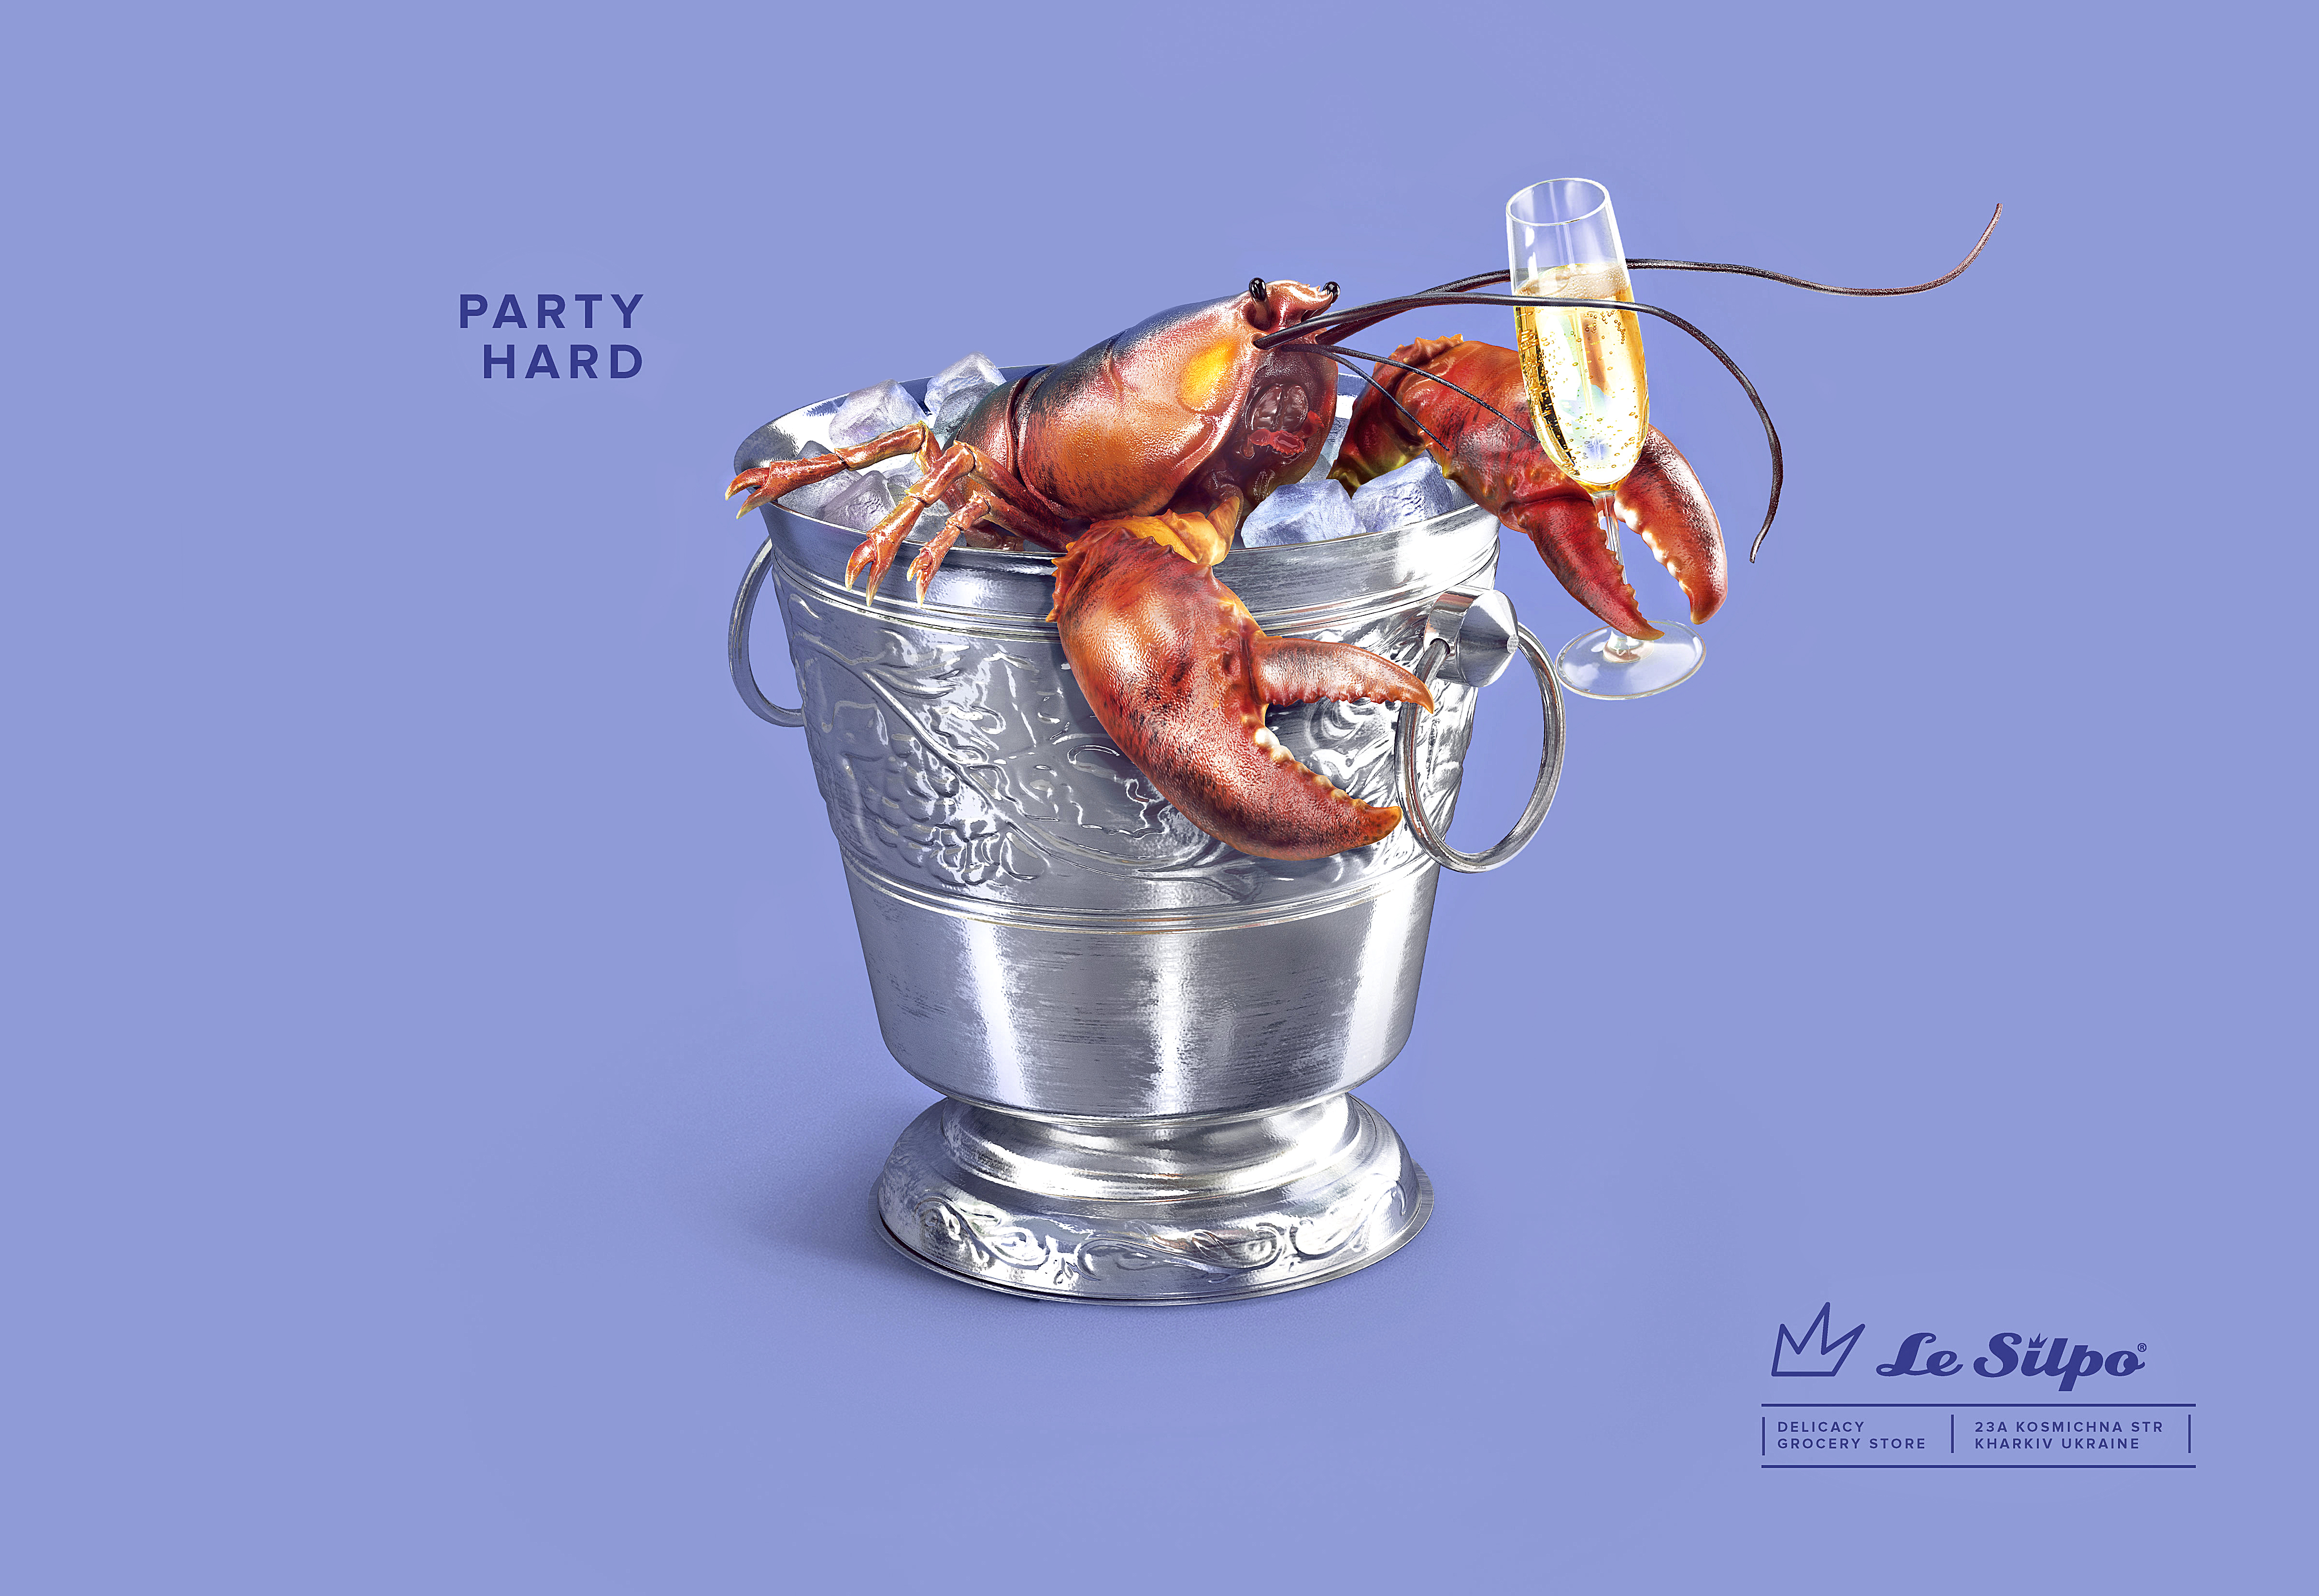 Party Hard. Lobster